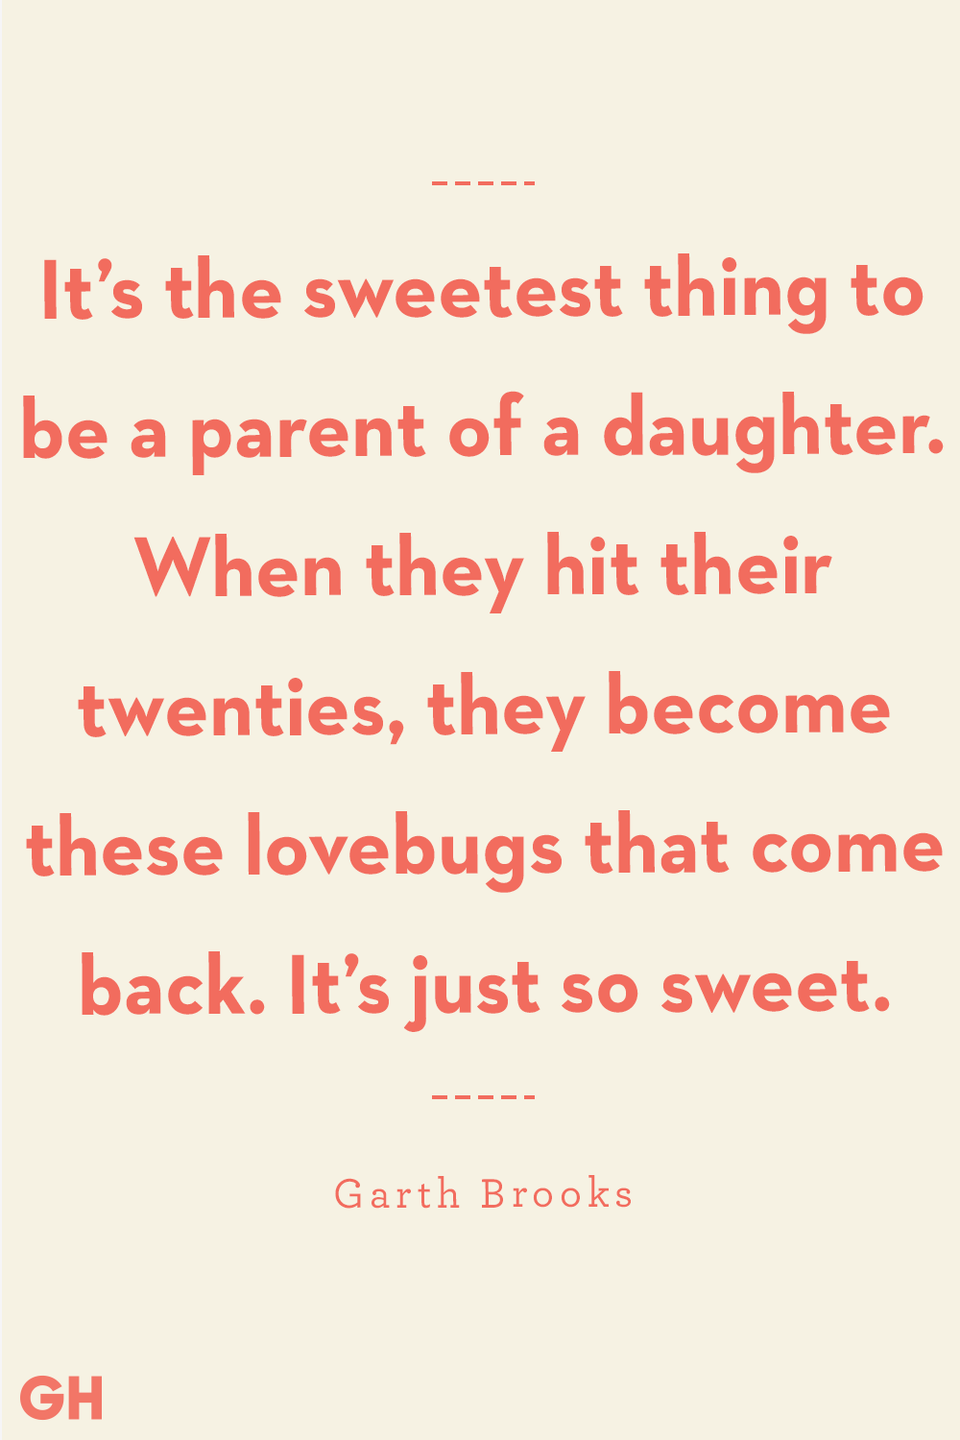 <p>It's the sweetest thing to be a parent of a daughter. When they hit their twenties, they become these lovebugs that come back. It's just so sweet.<br></p>